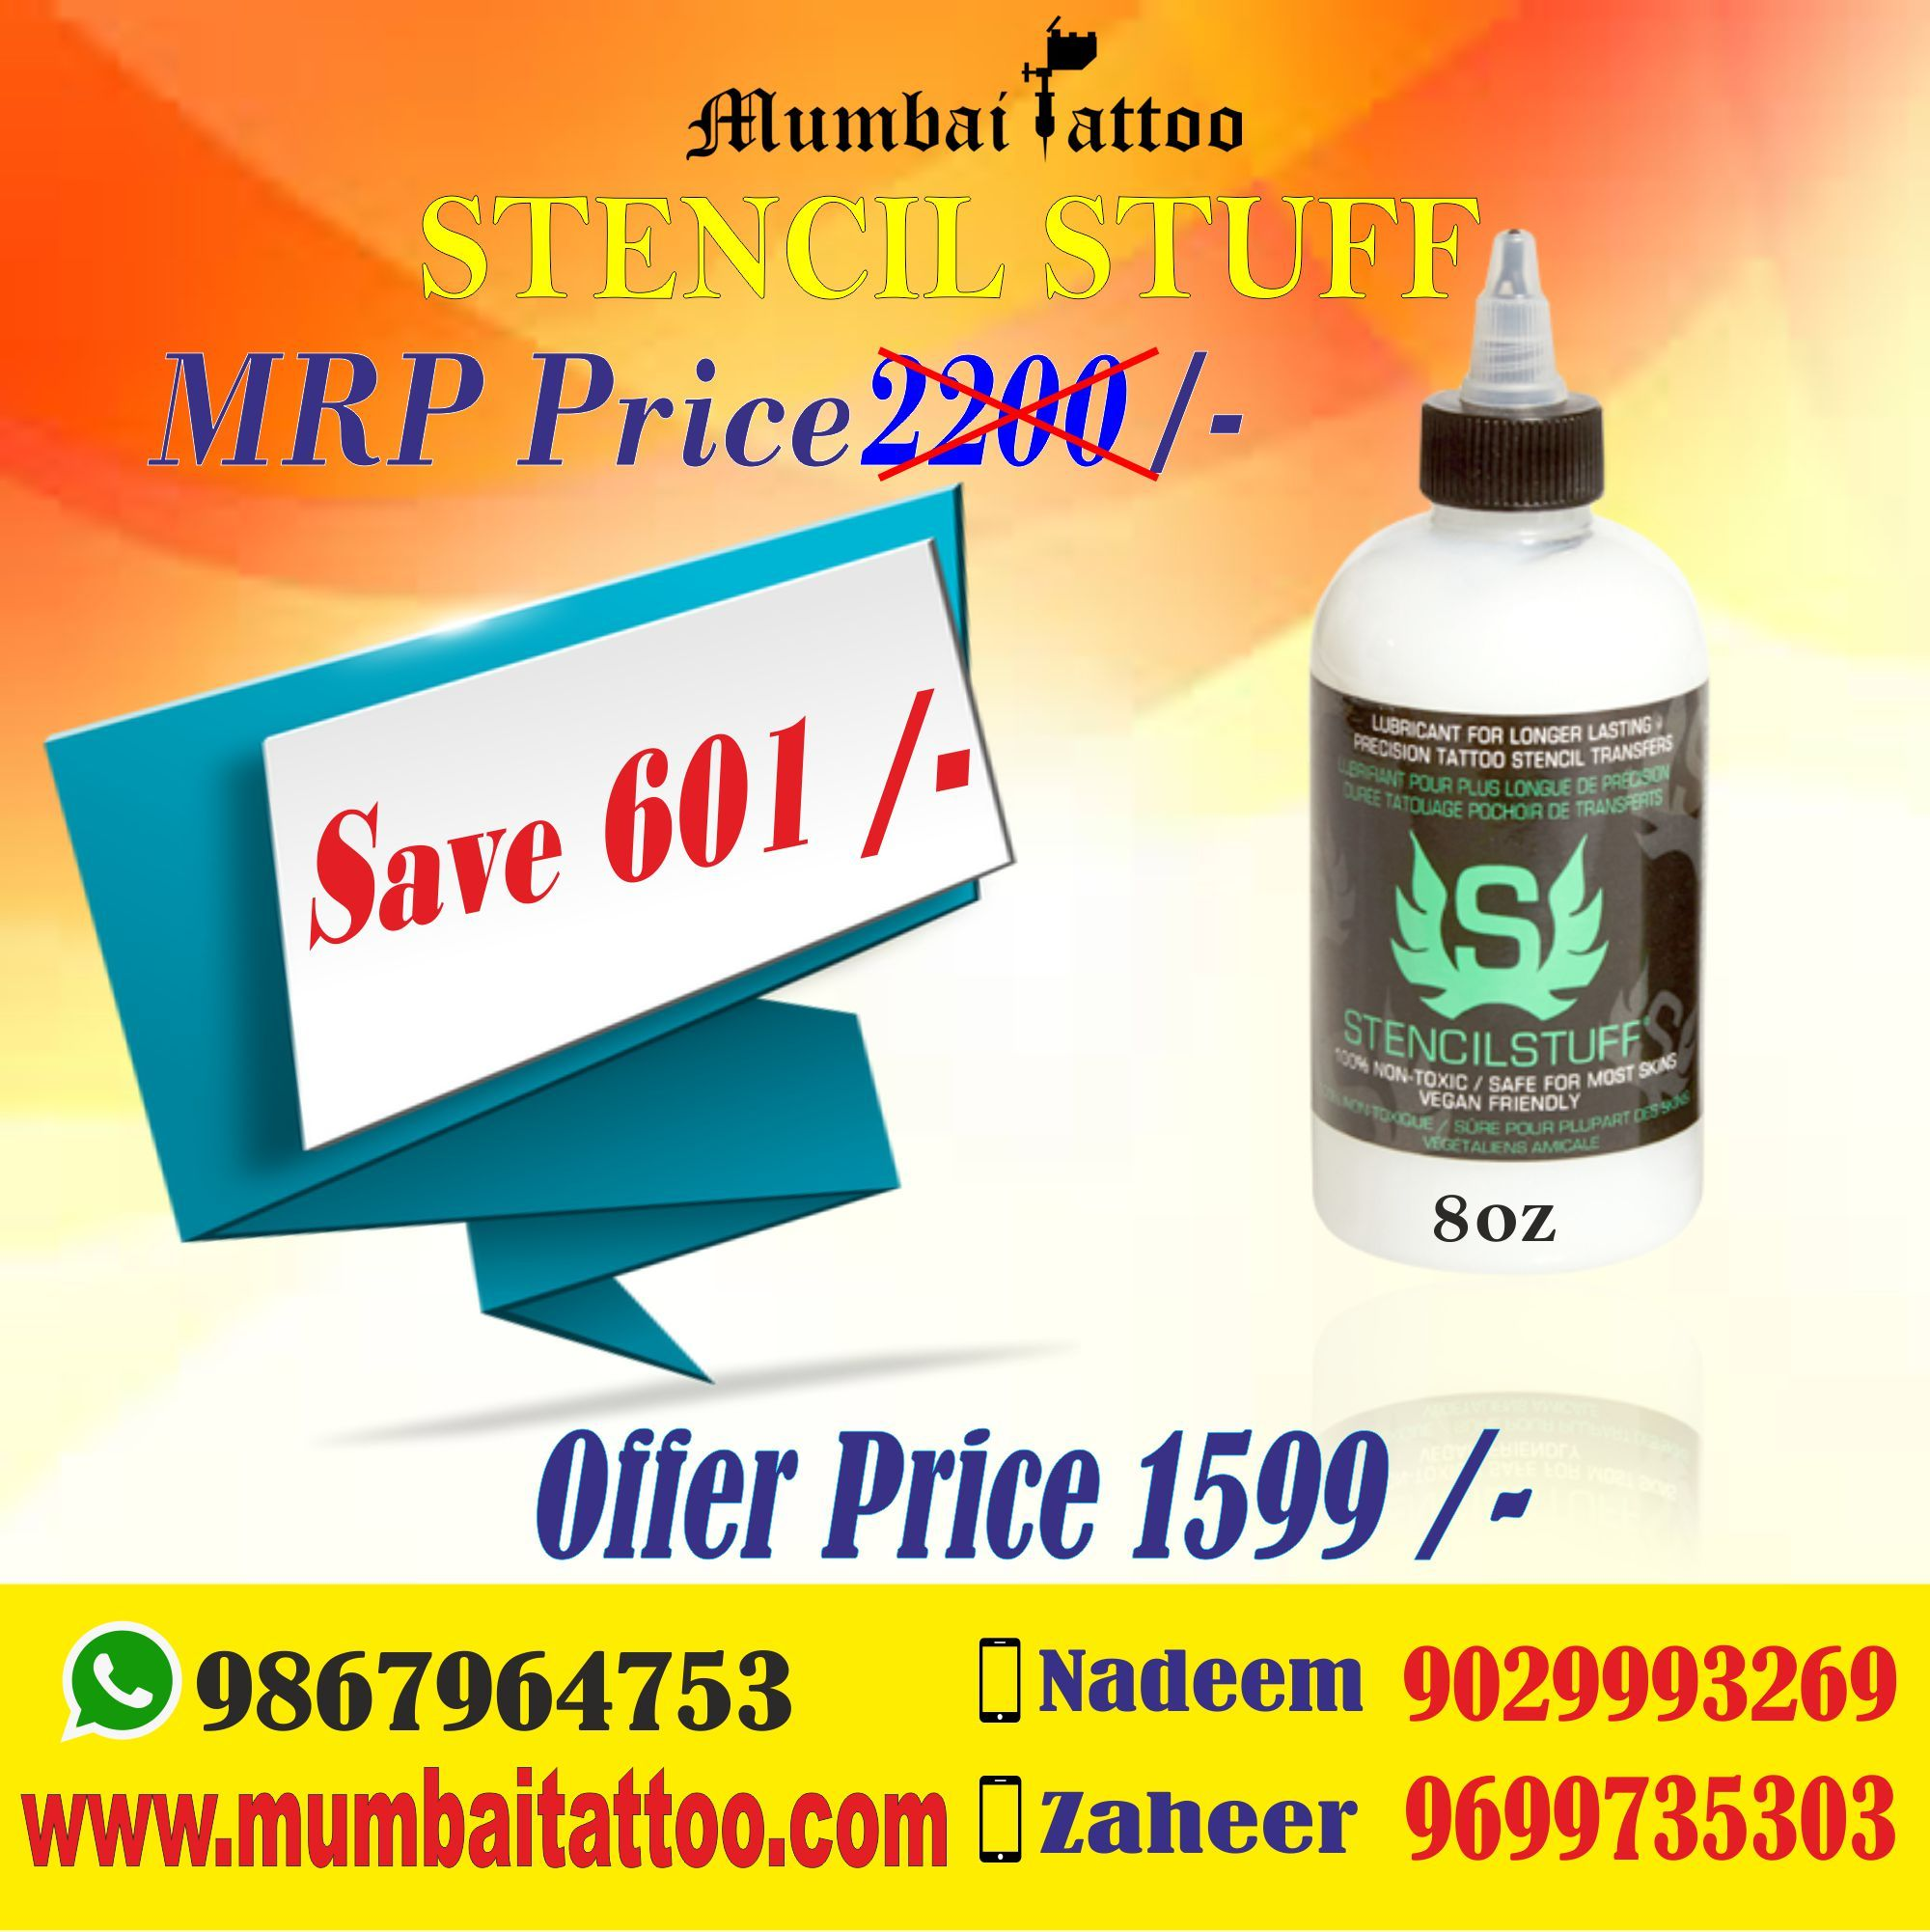 Buy stensil stuff at Rs.1599 for one and save heavy on mrp